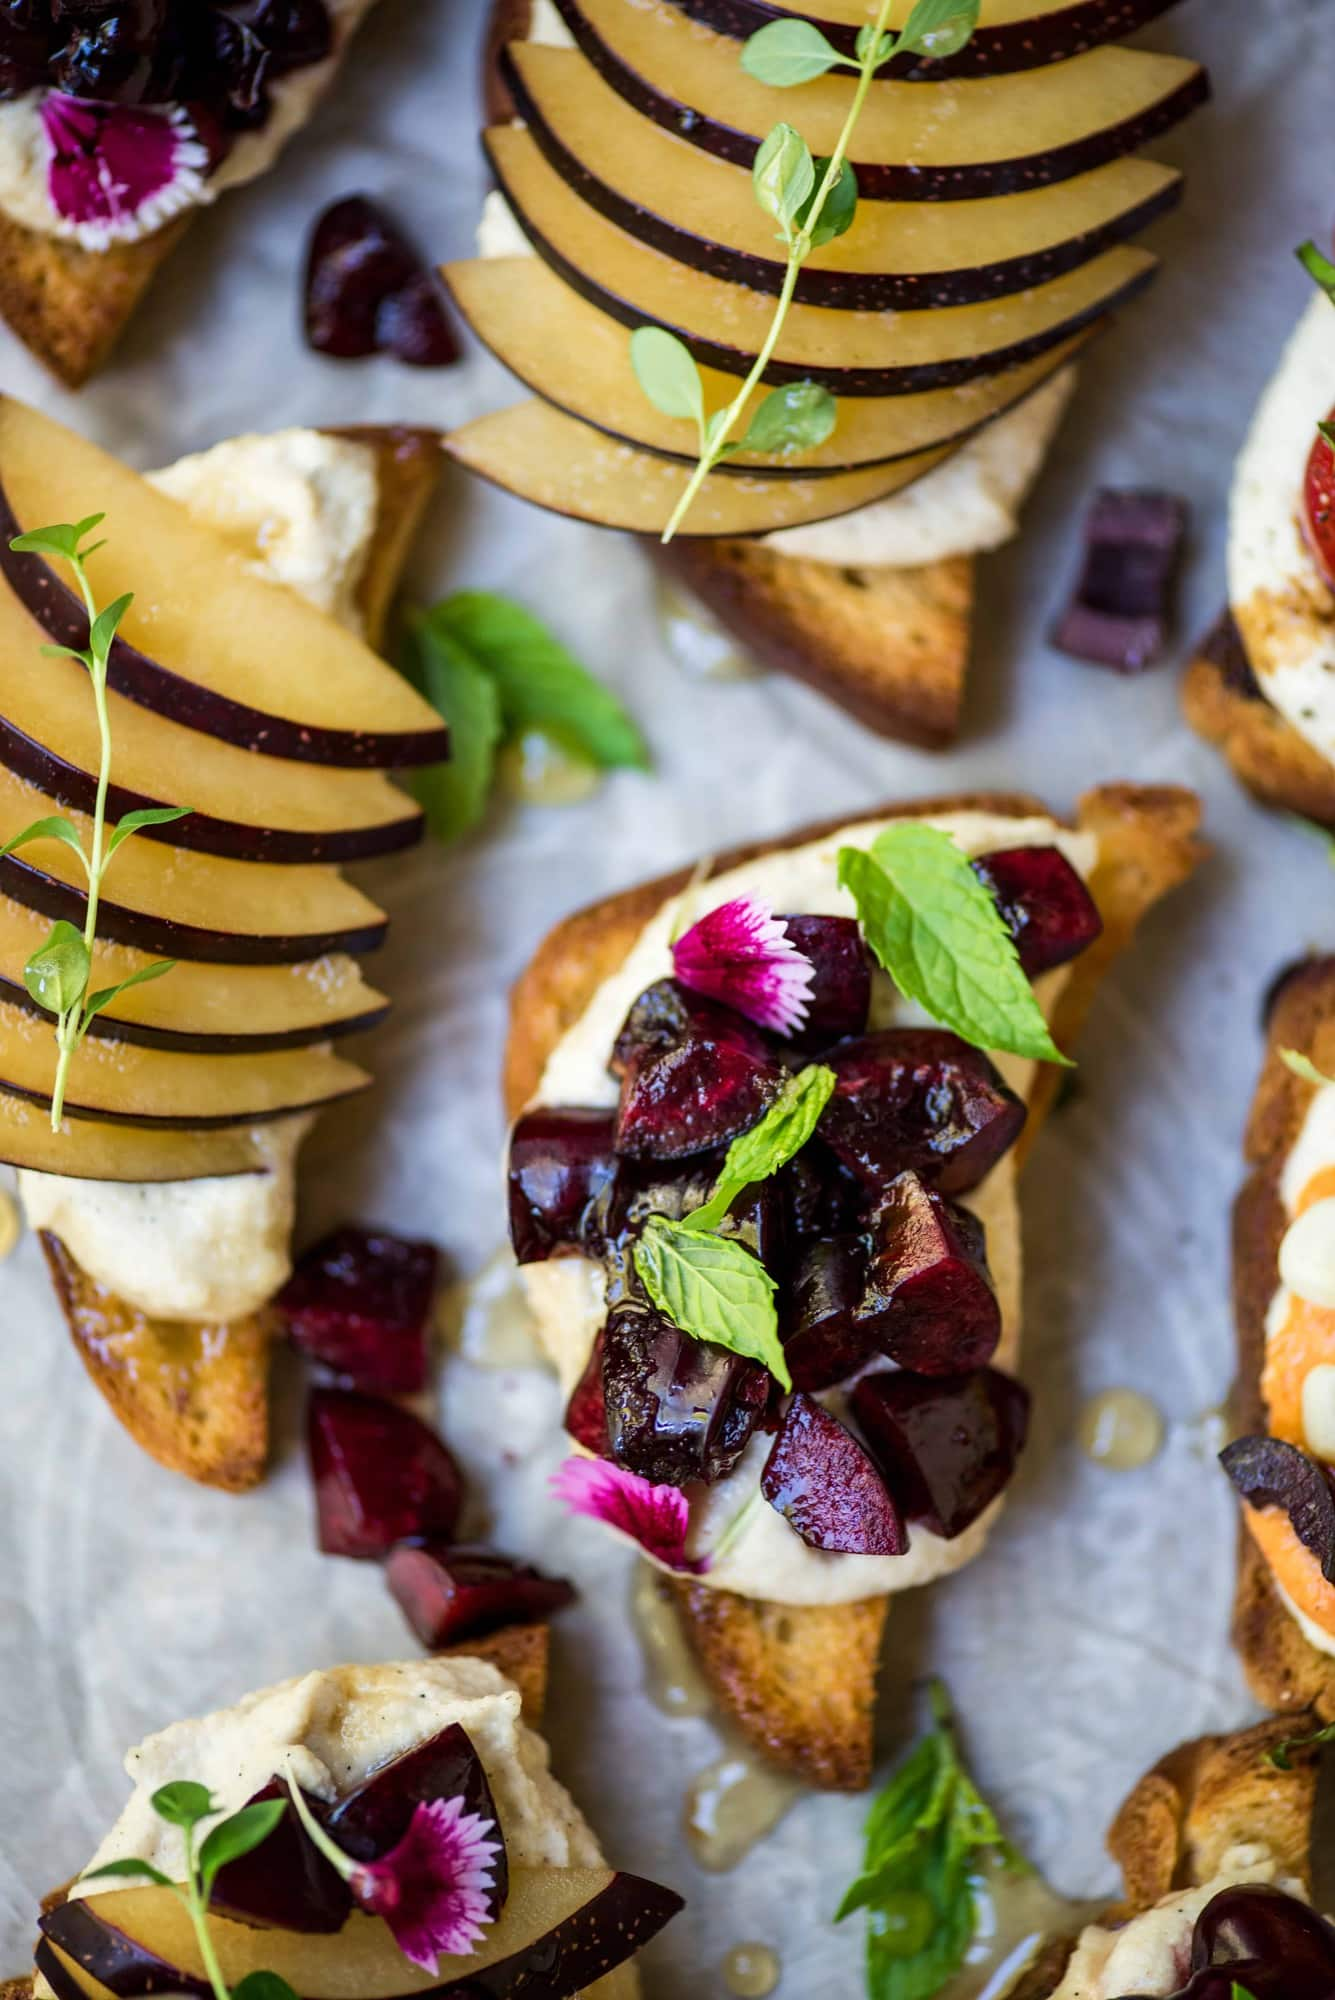 Close up of crostini topped with cherries, plum, ricotta and herbs